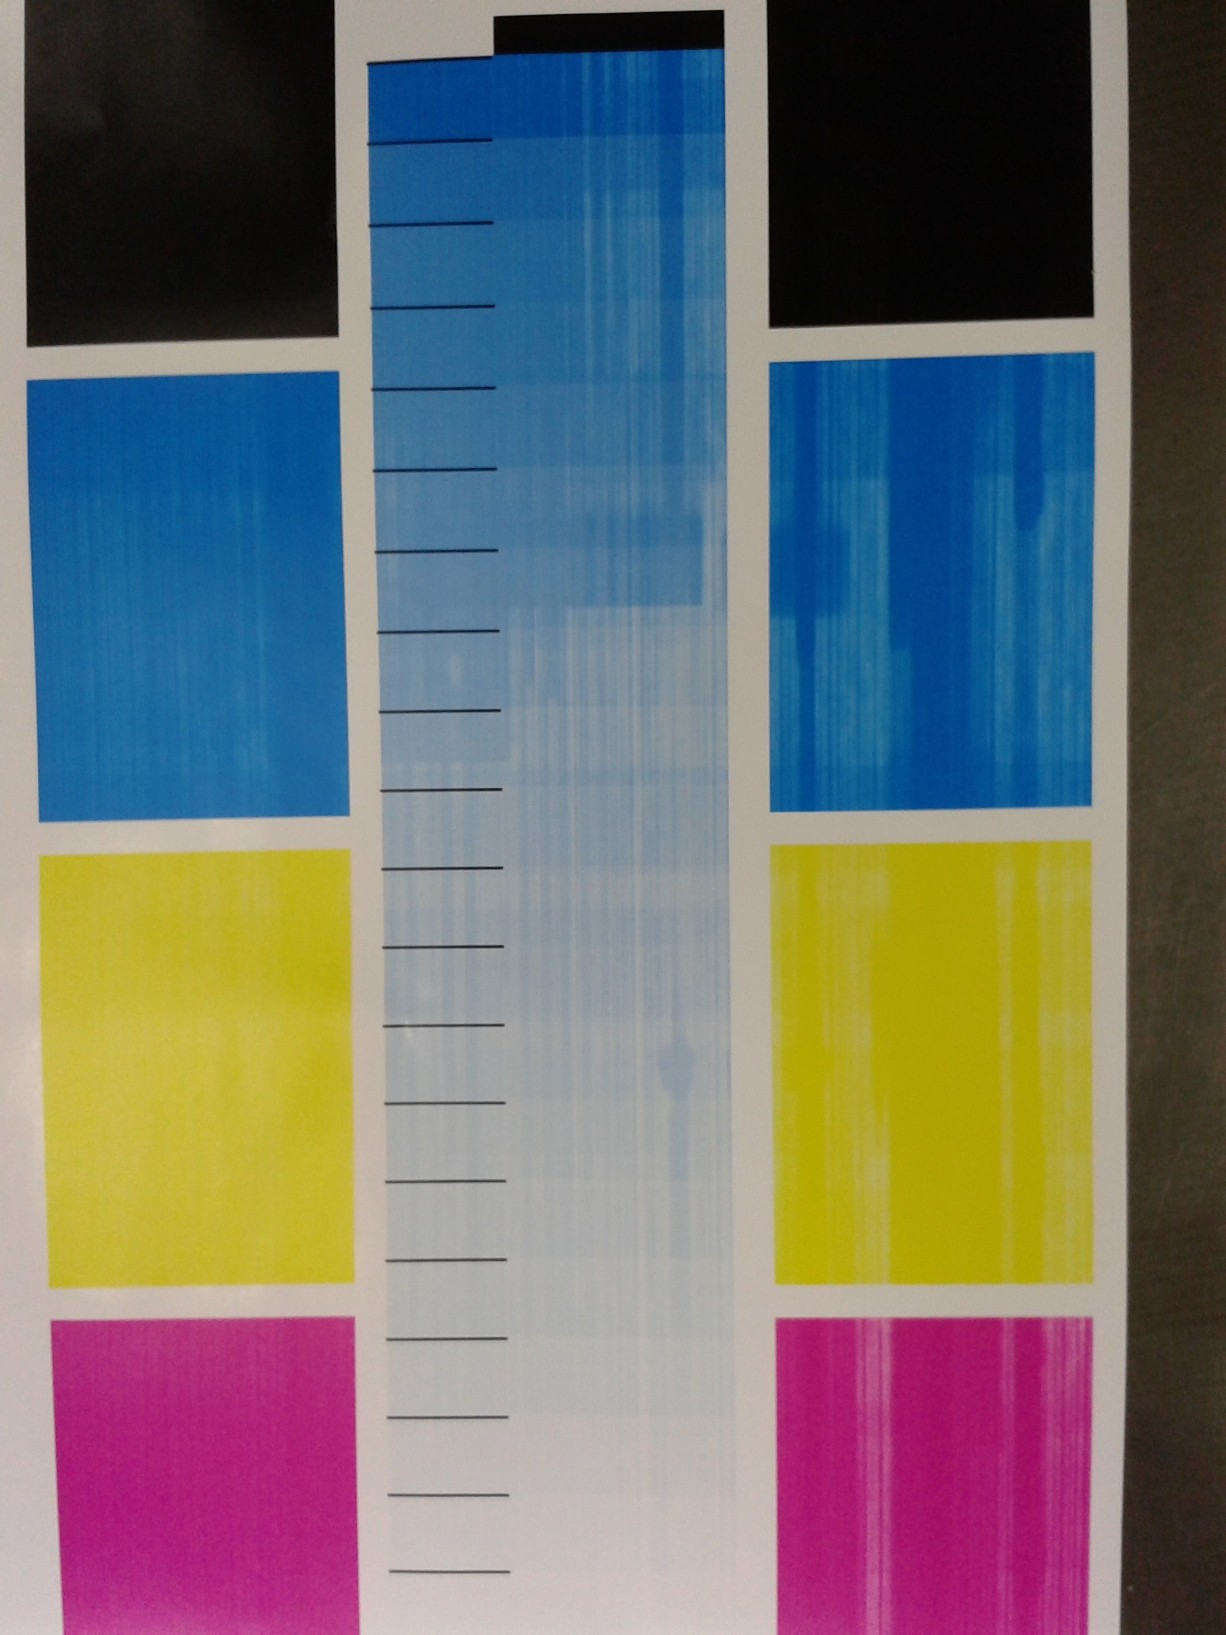 Banding and Streaking Issues | Color Printing Forum